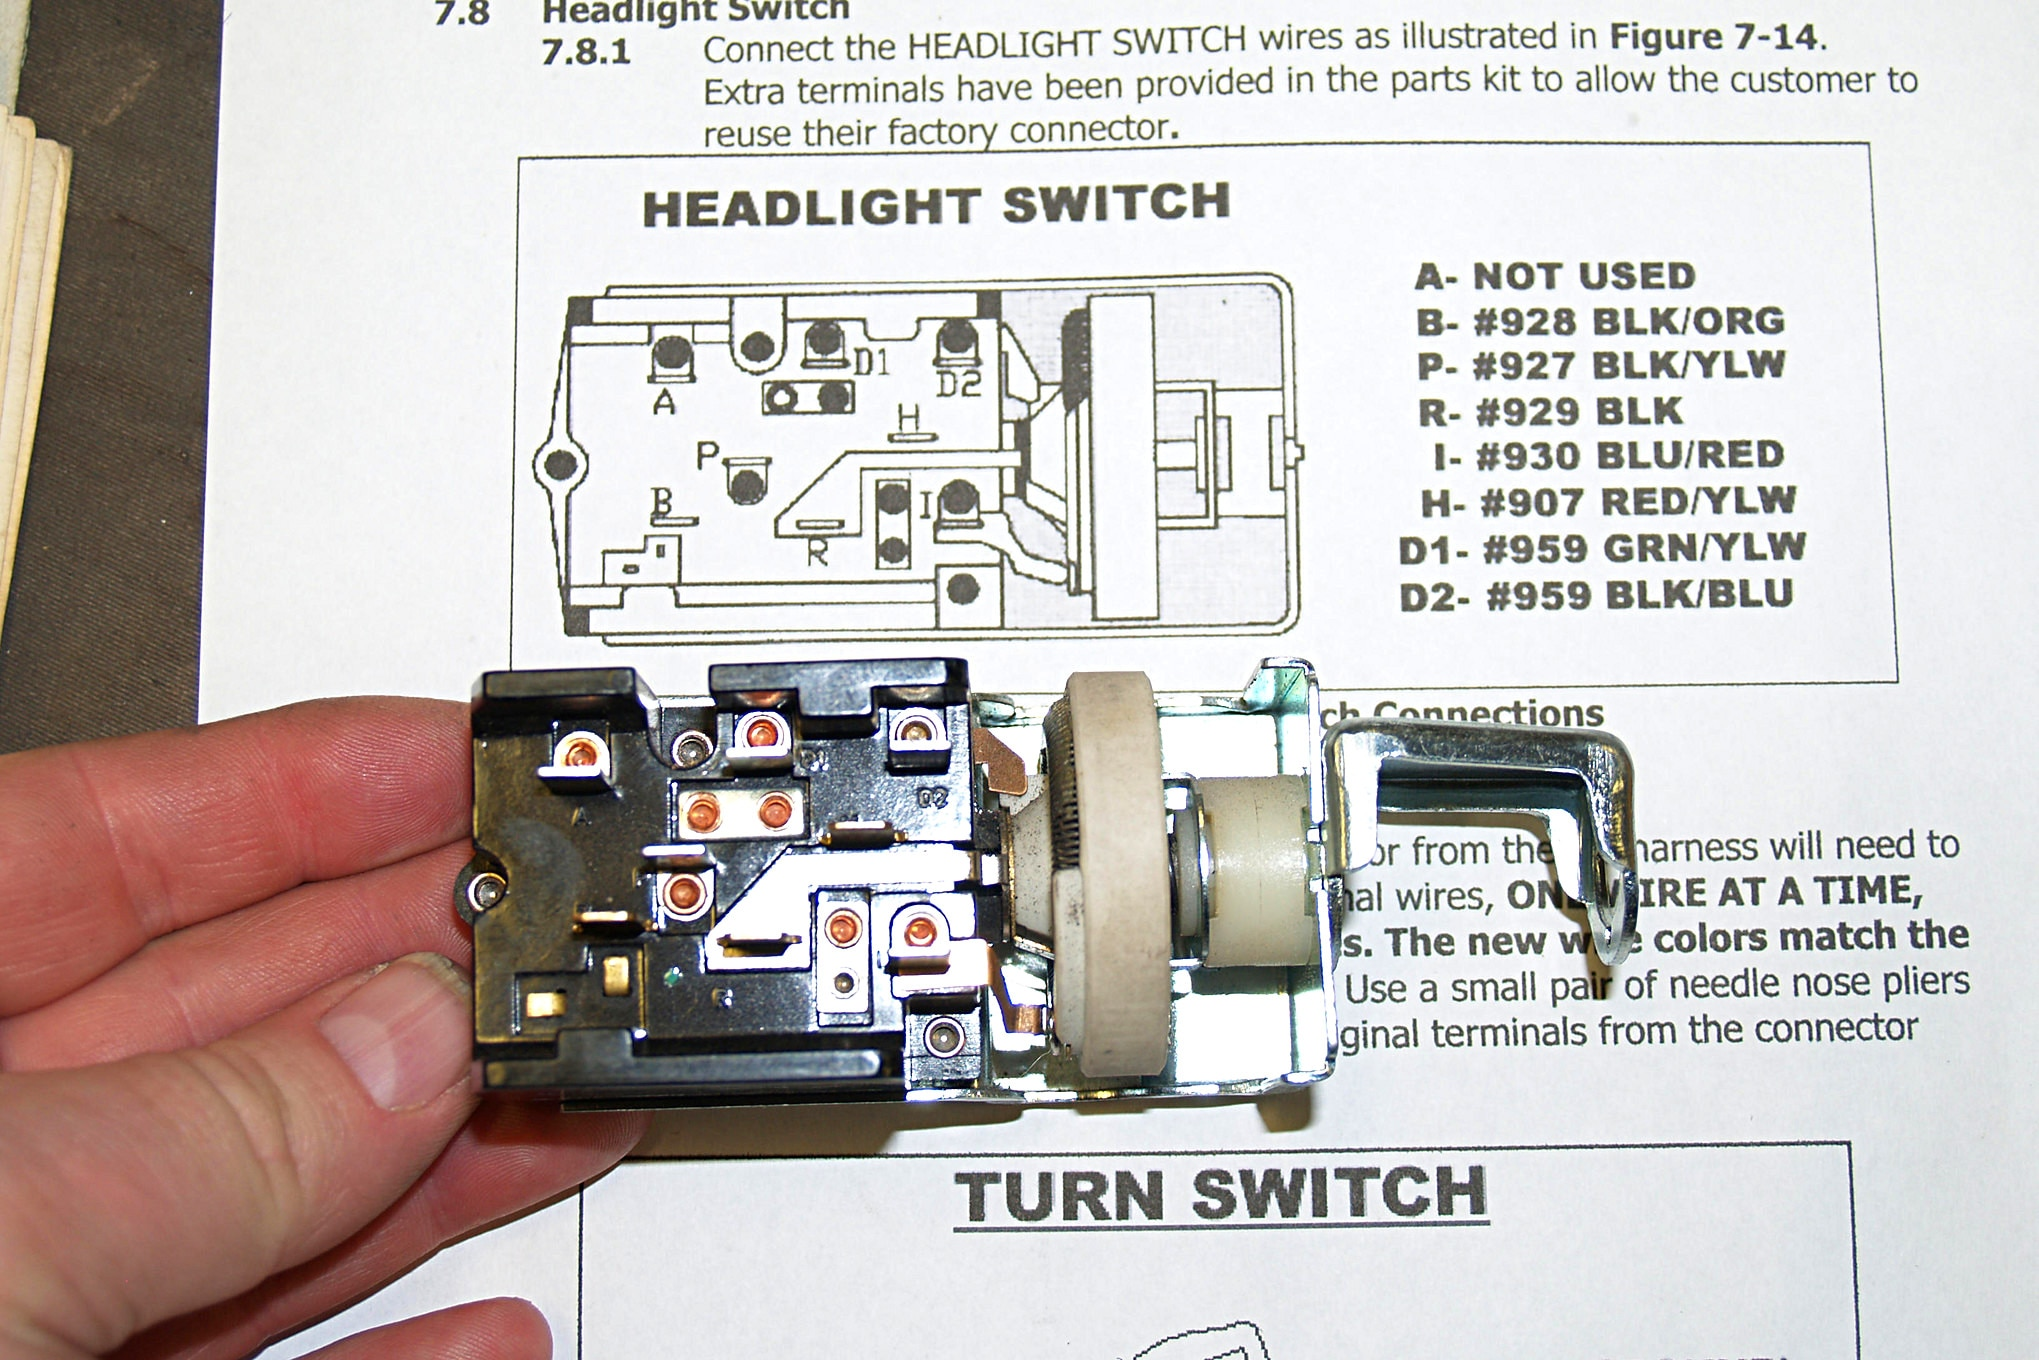 electrical gremlins and more vintage mustang tech questions and answers headlight switch wiring pigtail kit includes 1 headlight switch [ 2039 x 1360 Pixel ]